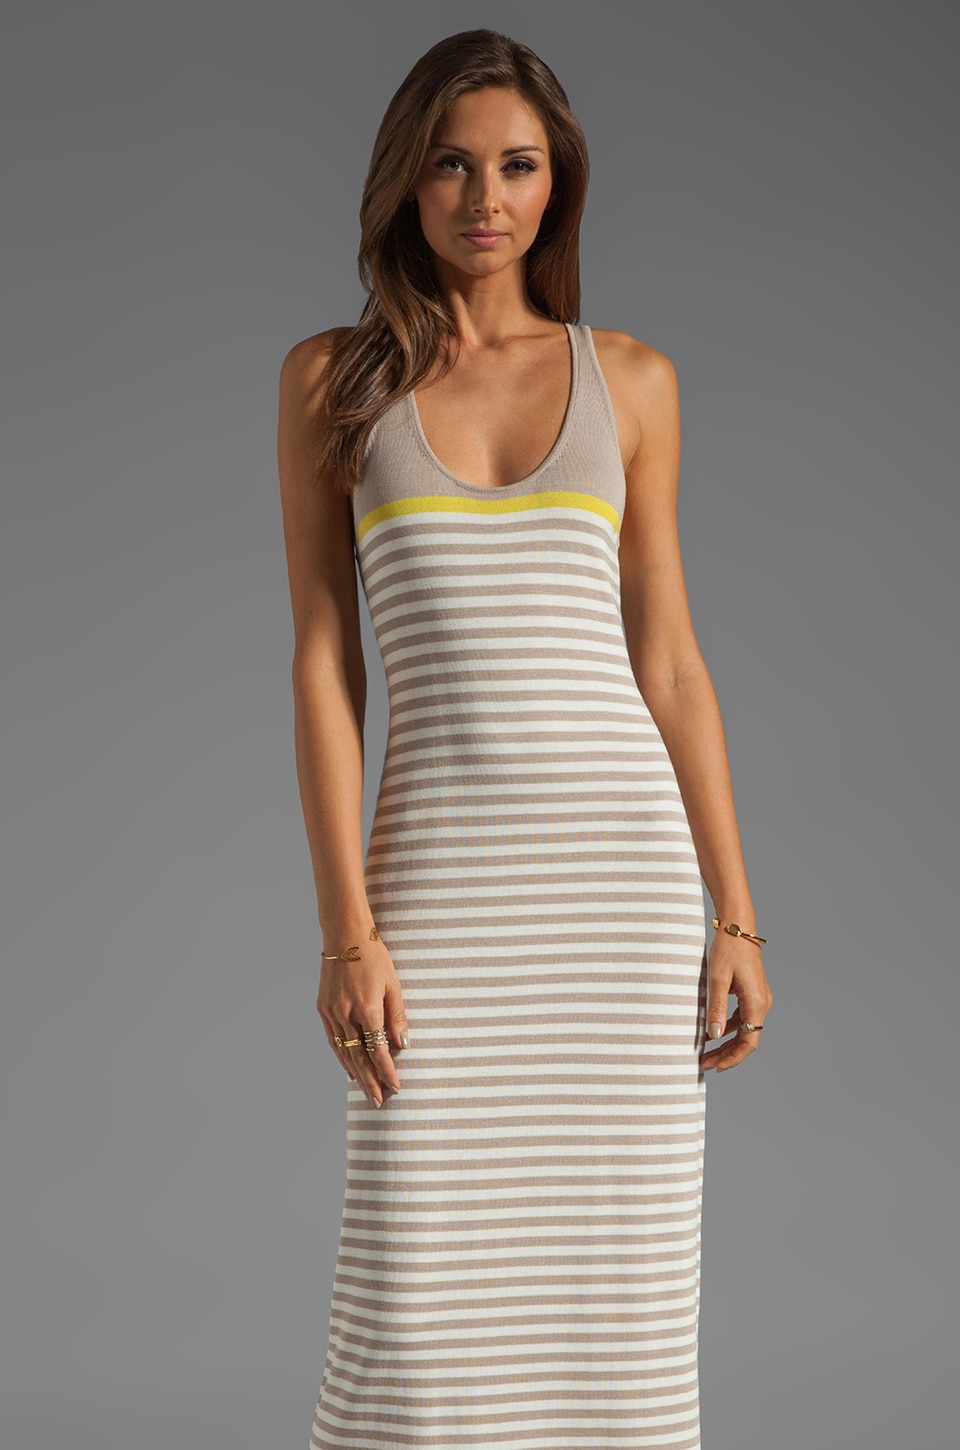 Trina Turk Artmageddon Maxi Dress in Boardwalk